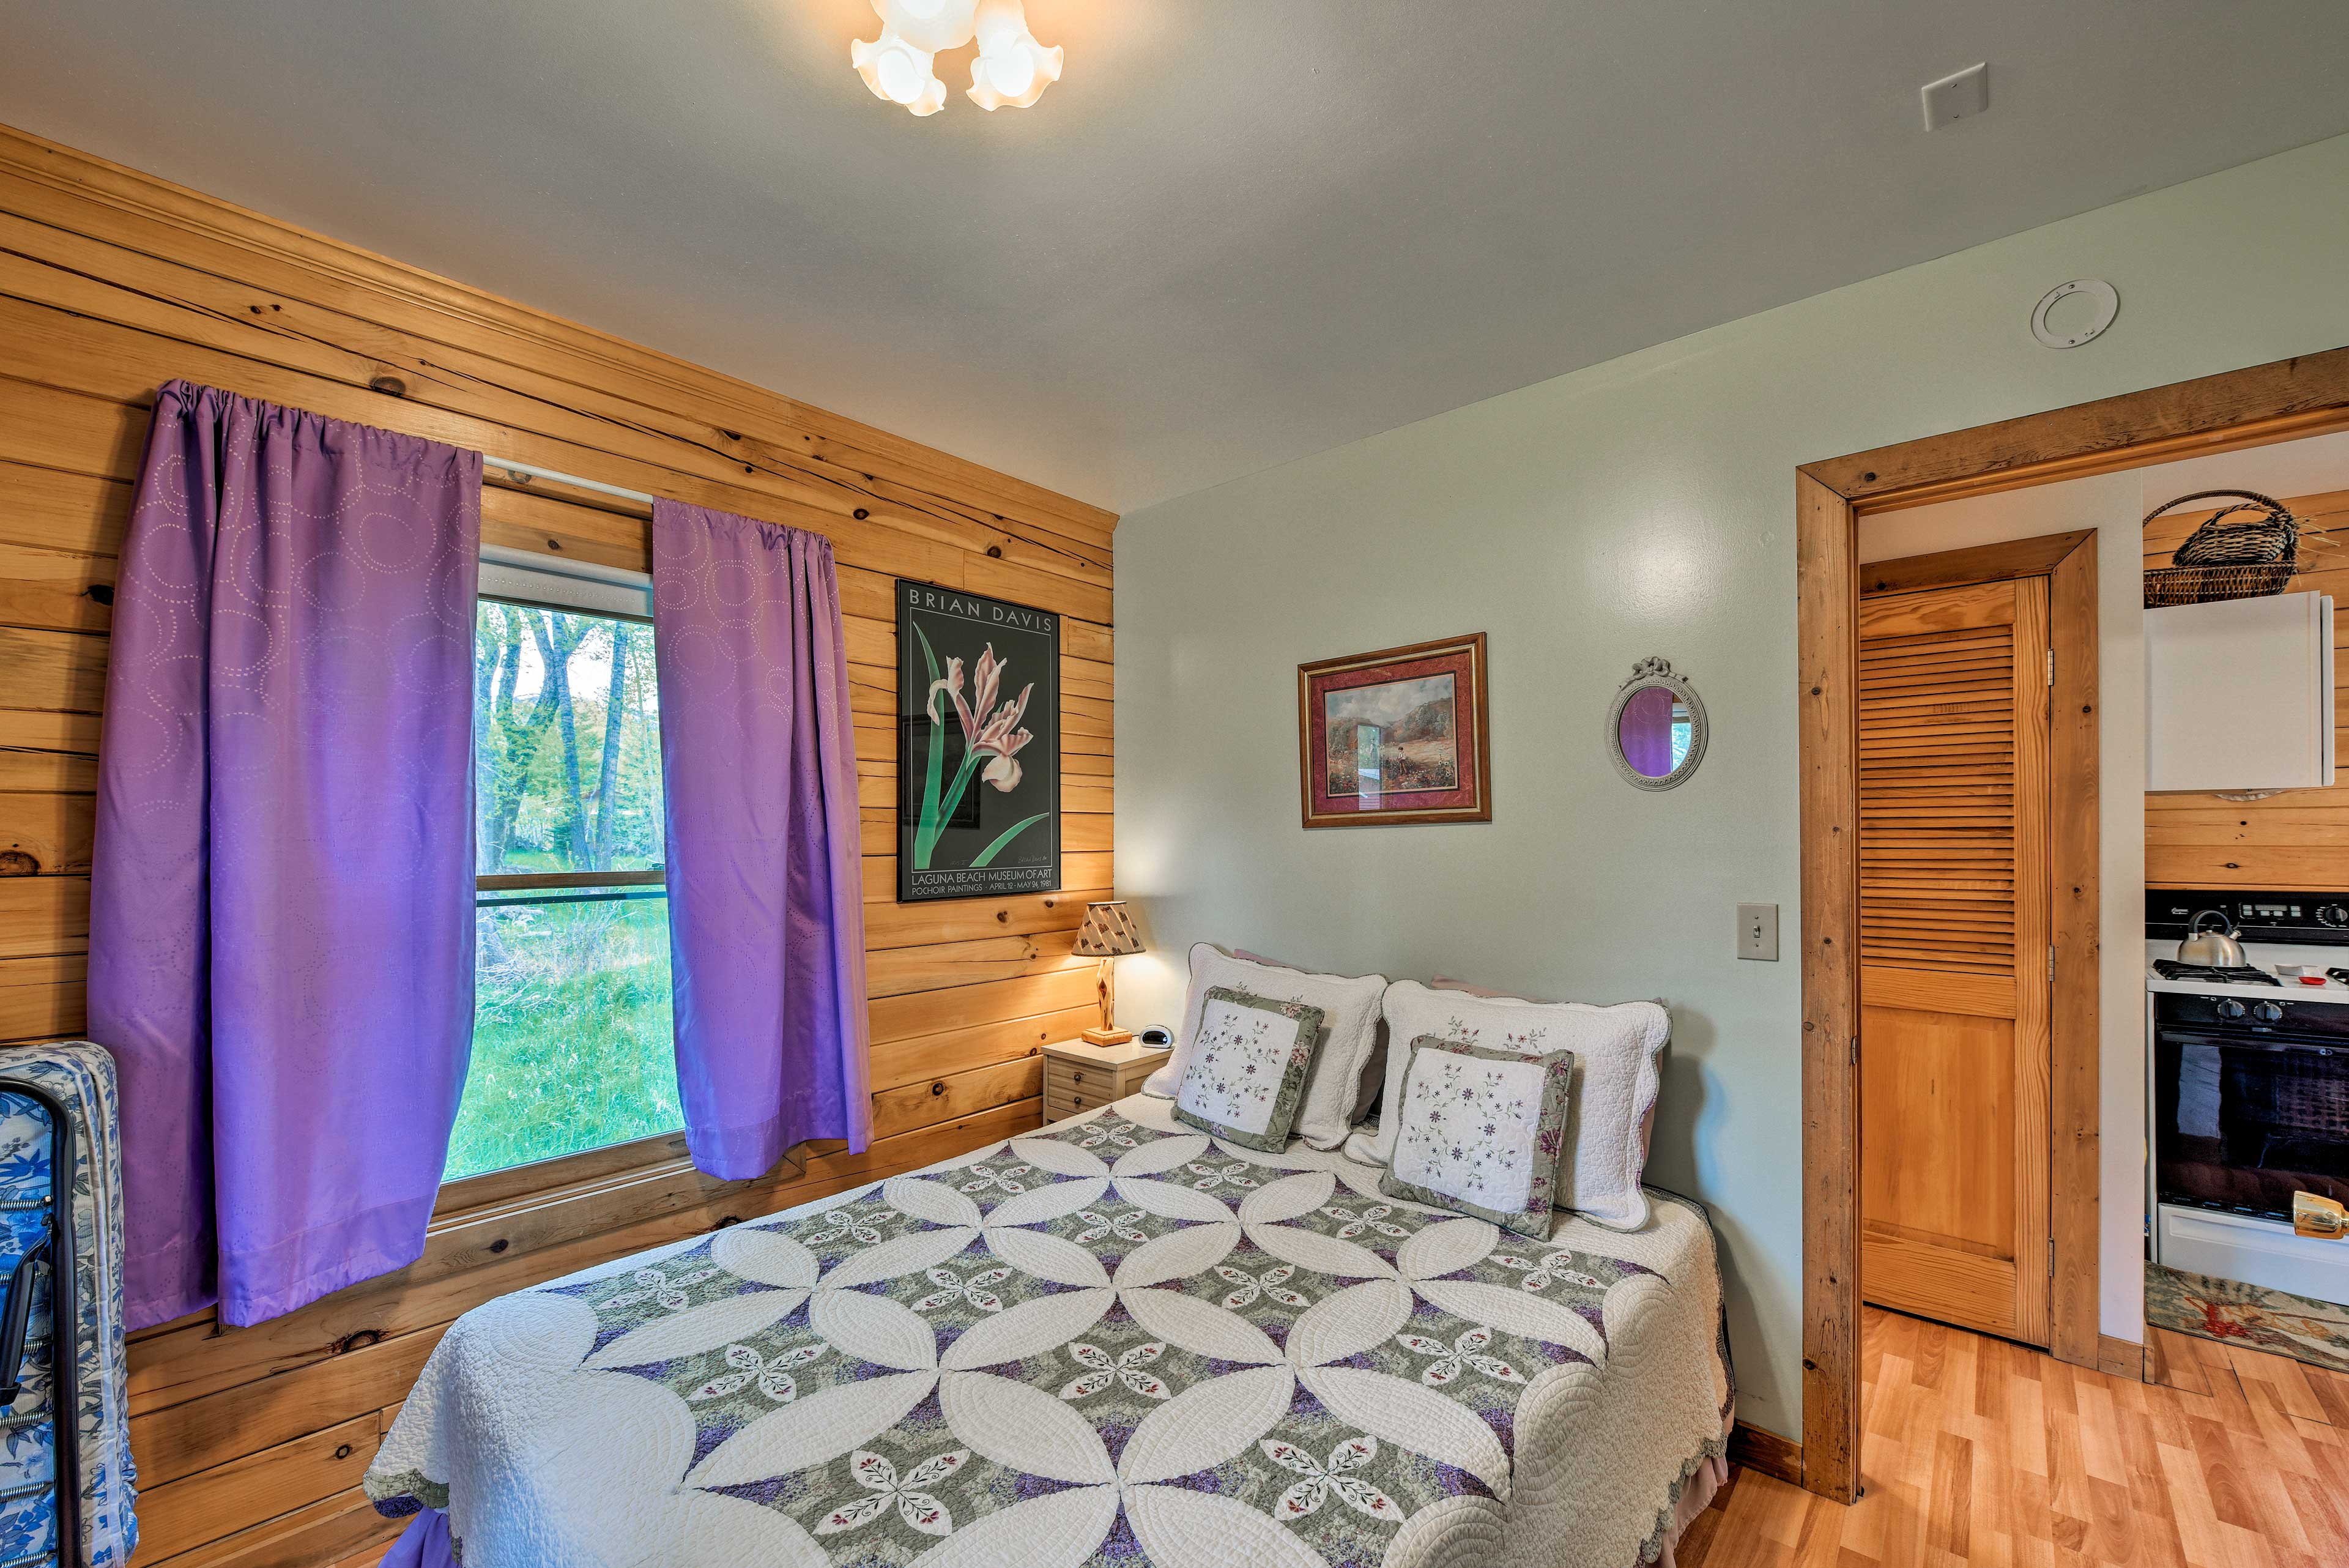 The bedroom boasts a full-sized bed.